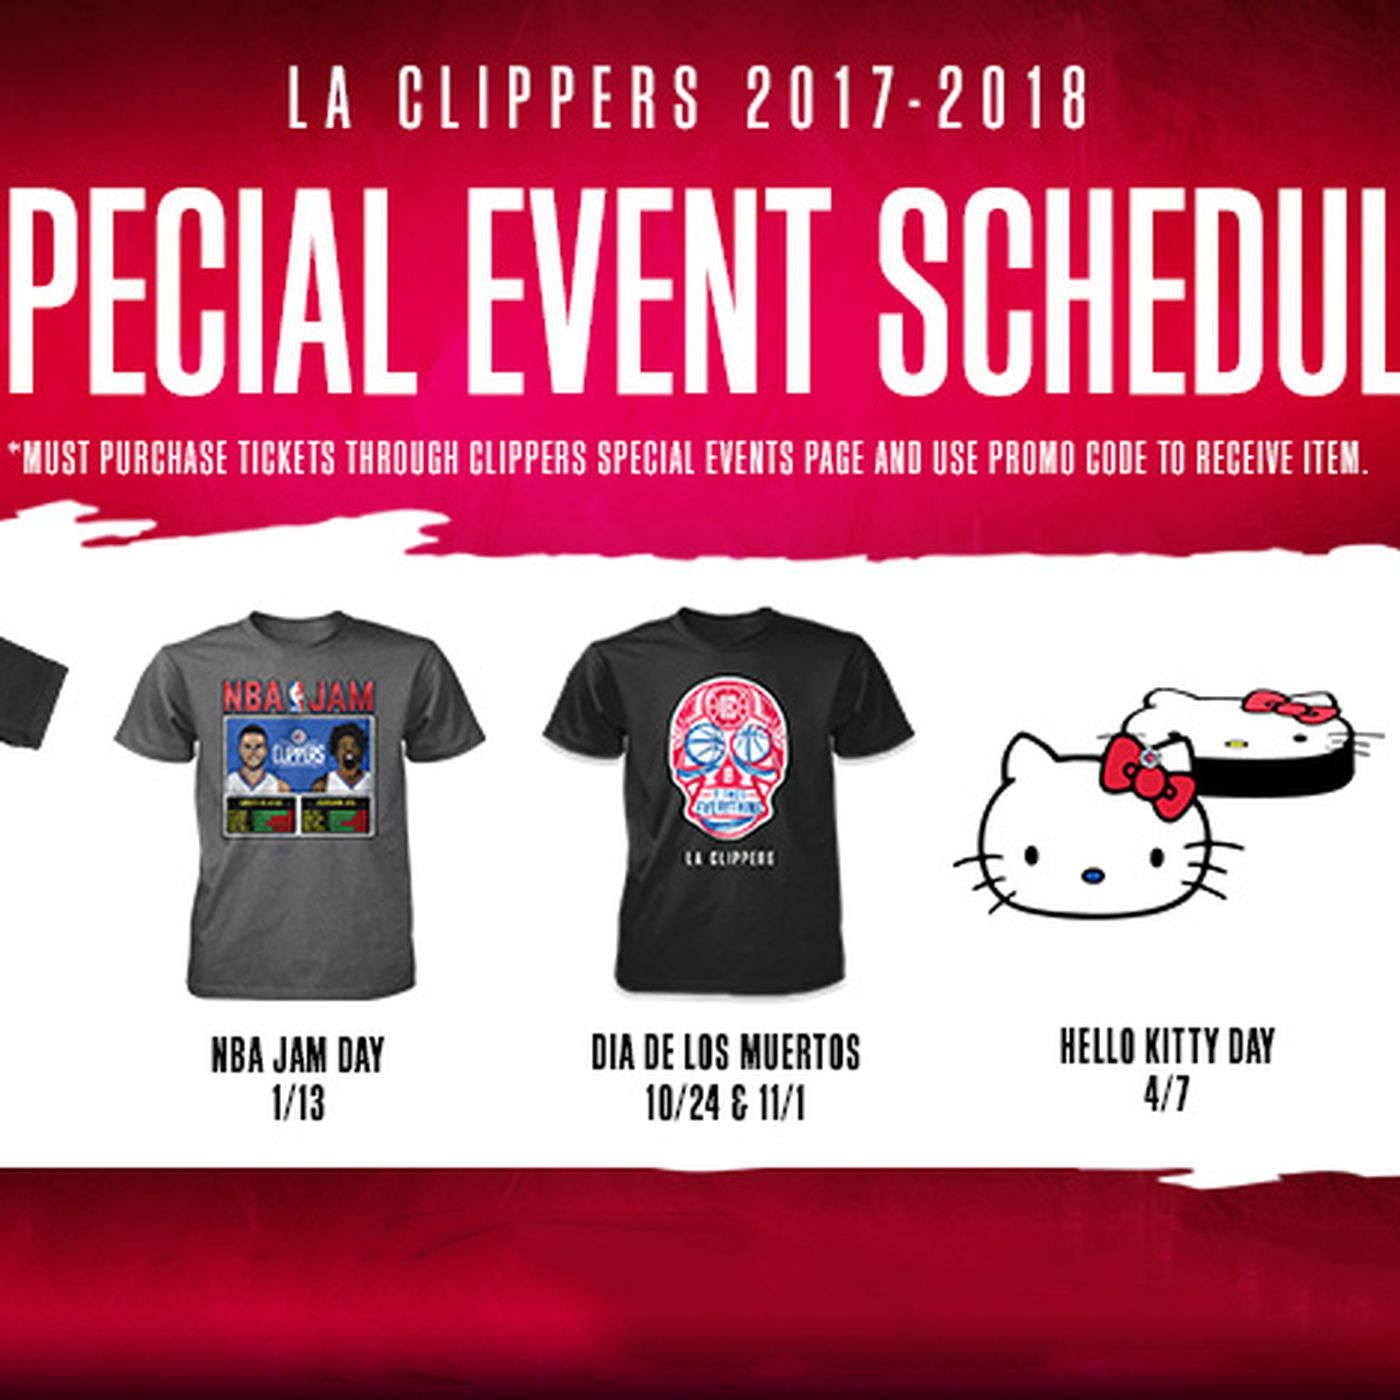 2017-18 Clippers Promotions: What You Need to Know - Clips